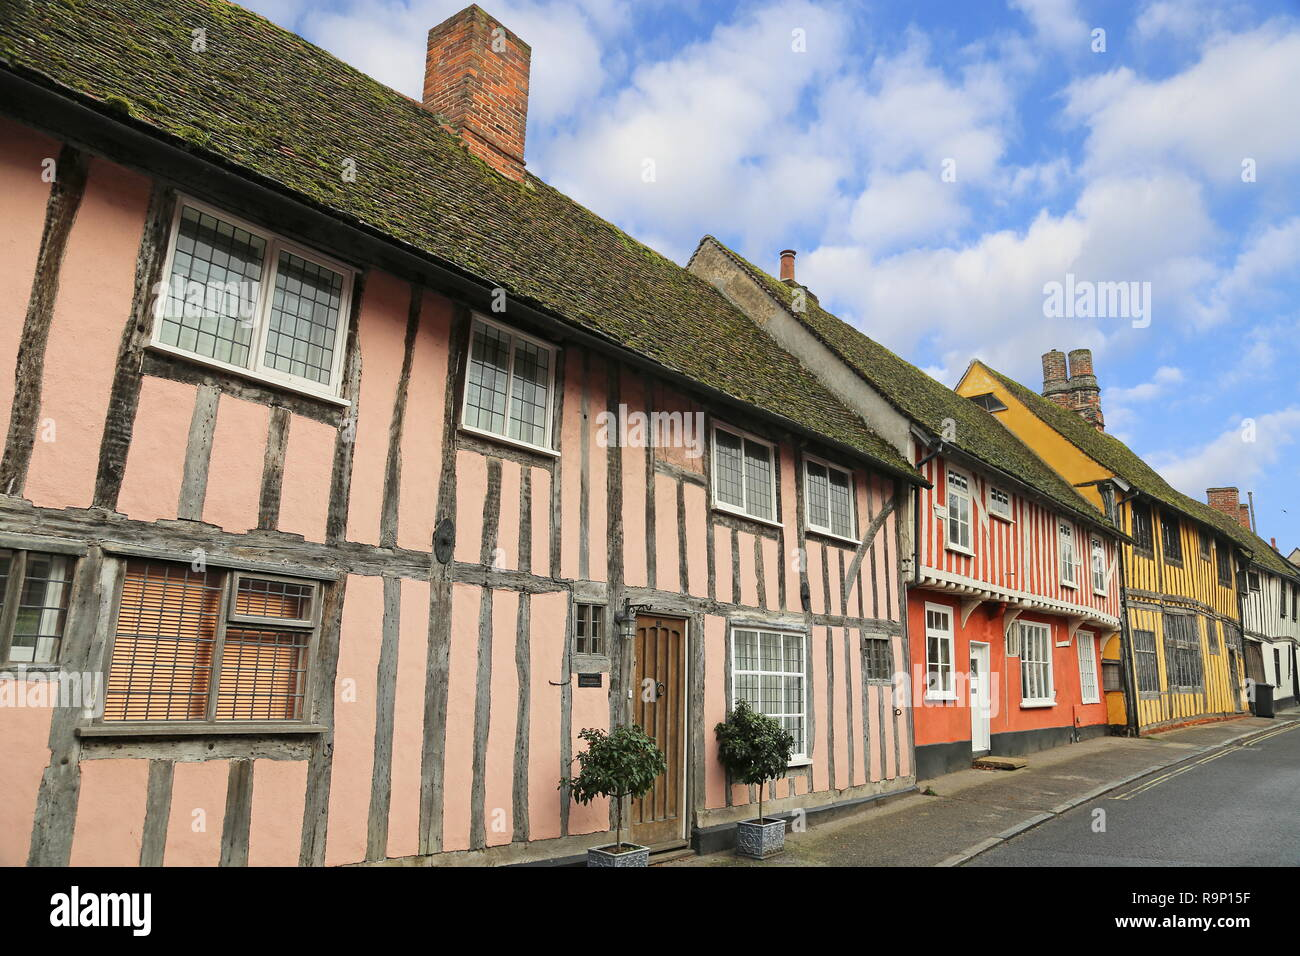 Half-timbered houses in Water Street, Lavenham, Babergh district, Suffolk, East Anglia, England, Great Britain, United Kingdom, UK, Europe - Stock Image